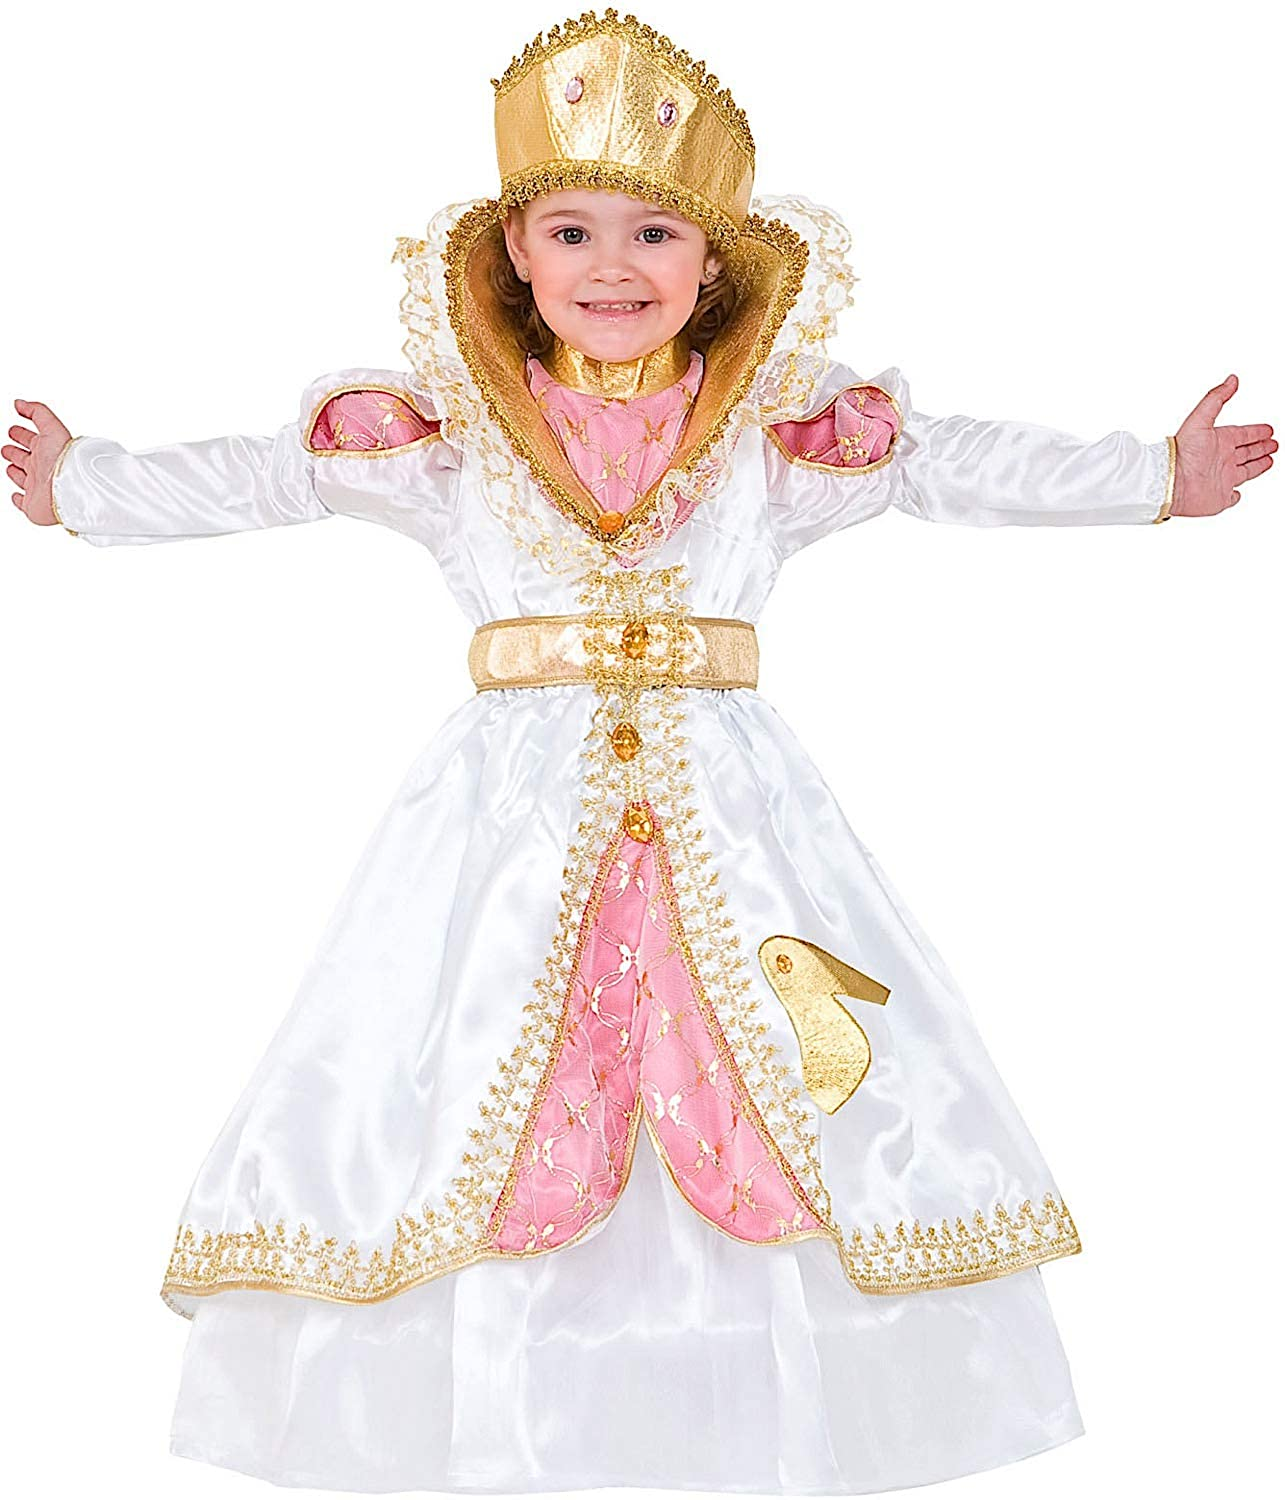 Costume Robe voiturenaval Belle LA Danse Fancy Robe HalFaibleeen Cosplay Veneziano Party 1178